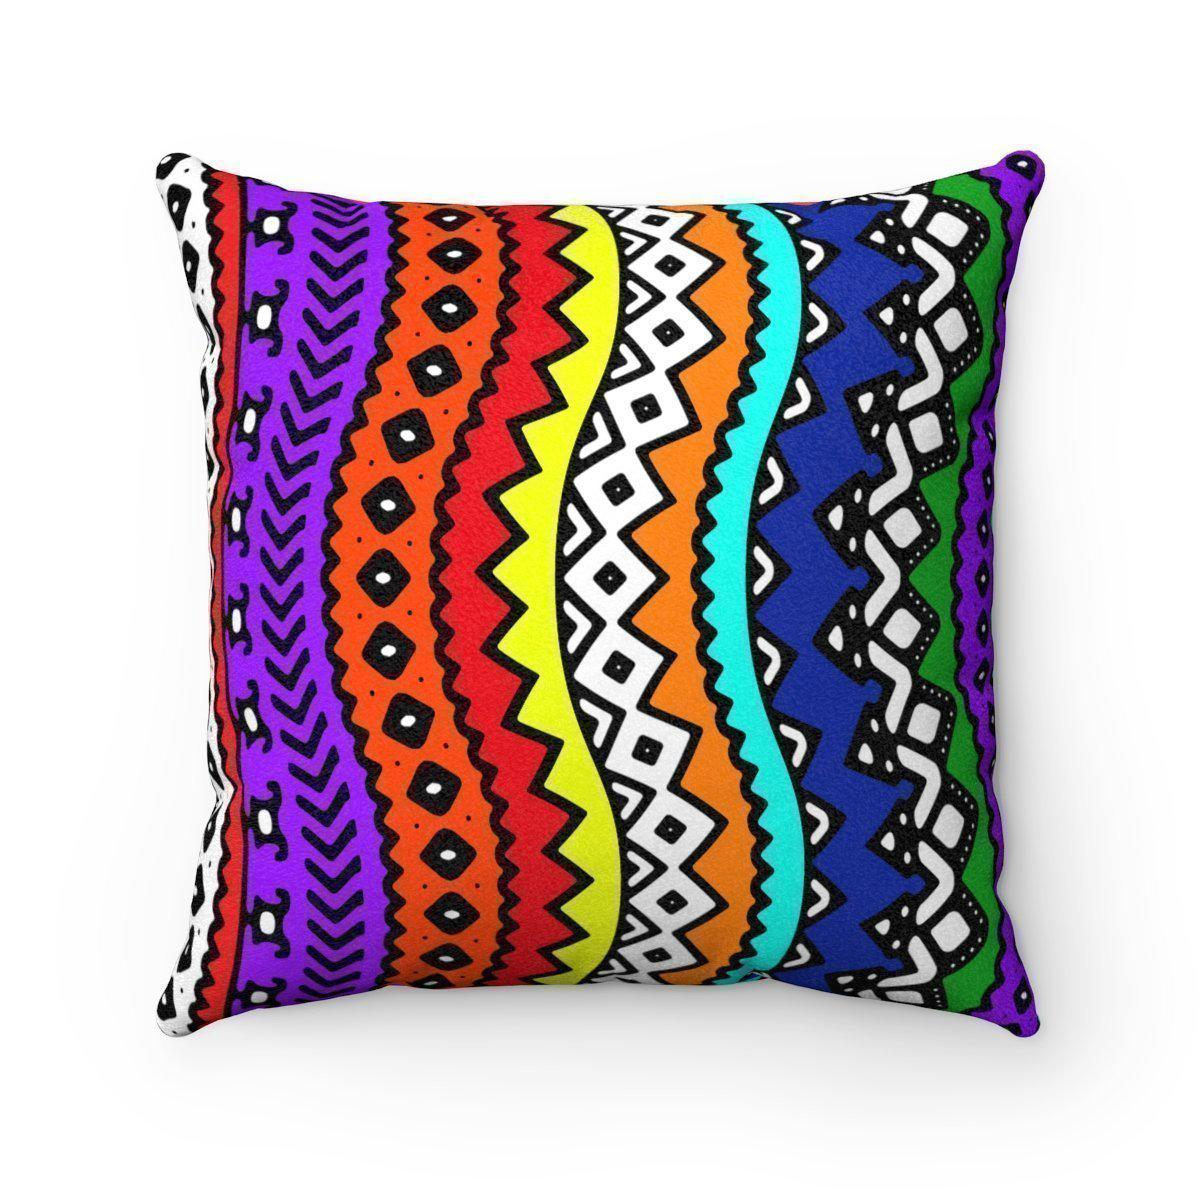 Faux suede tribal decorative pillow w/insert-Home Decor - Decorative Accents - Pillows & Throws - Decorative Pillows-Maison d'Elite-14x14-Très Elite